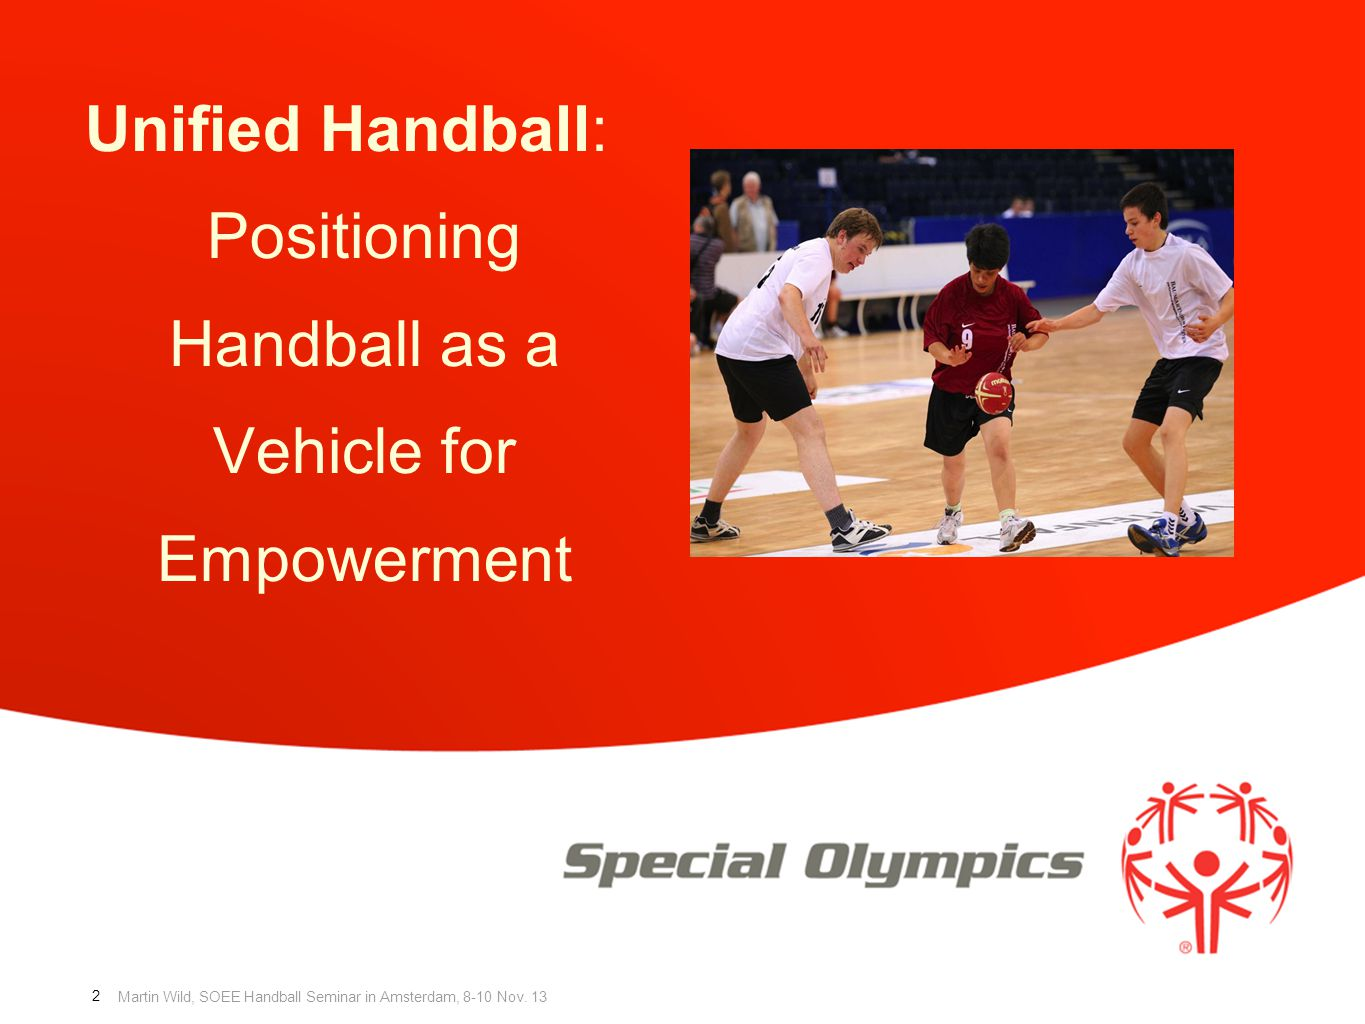 Unified Handball: Positioning Handball as a Vehicle for Empowerment